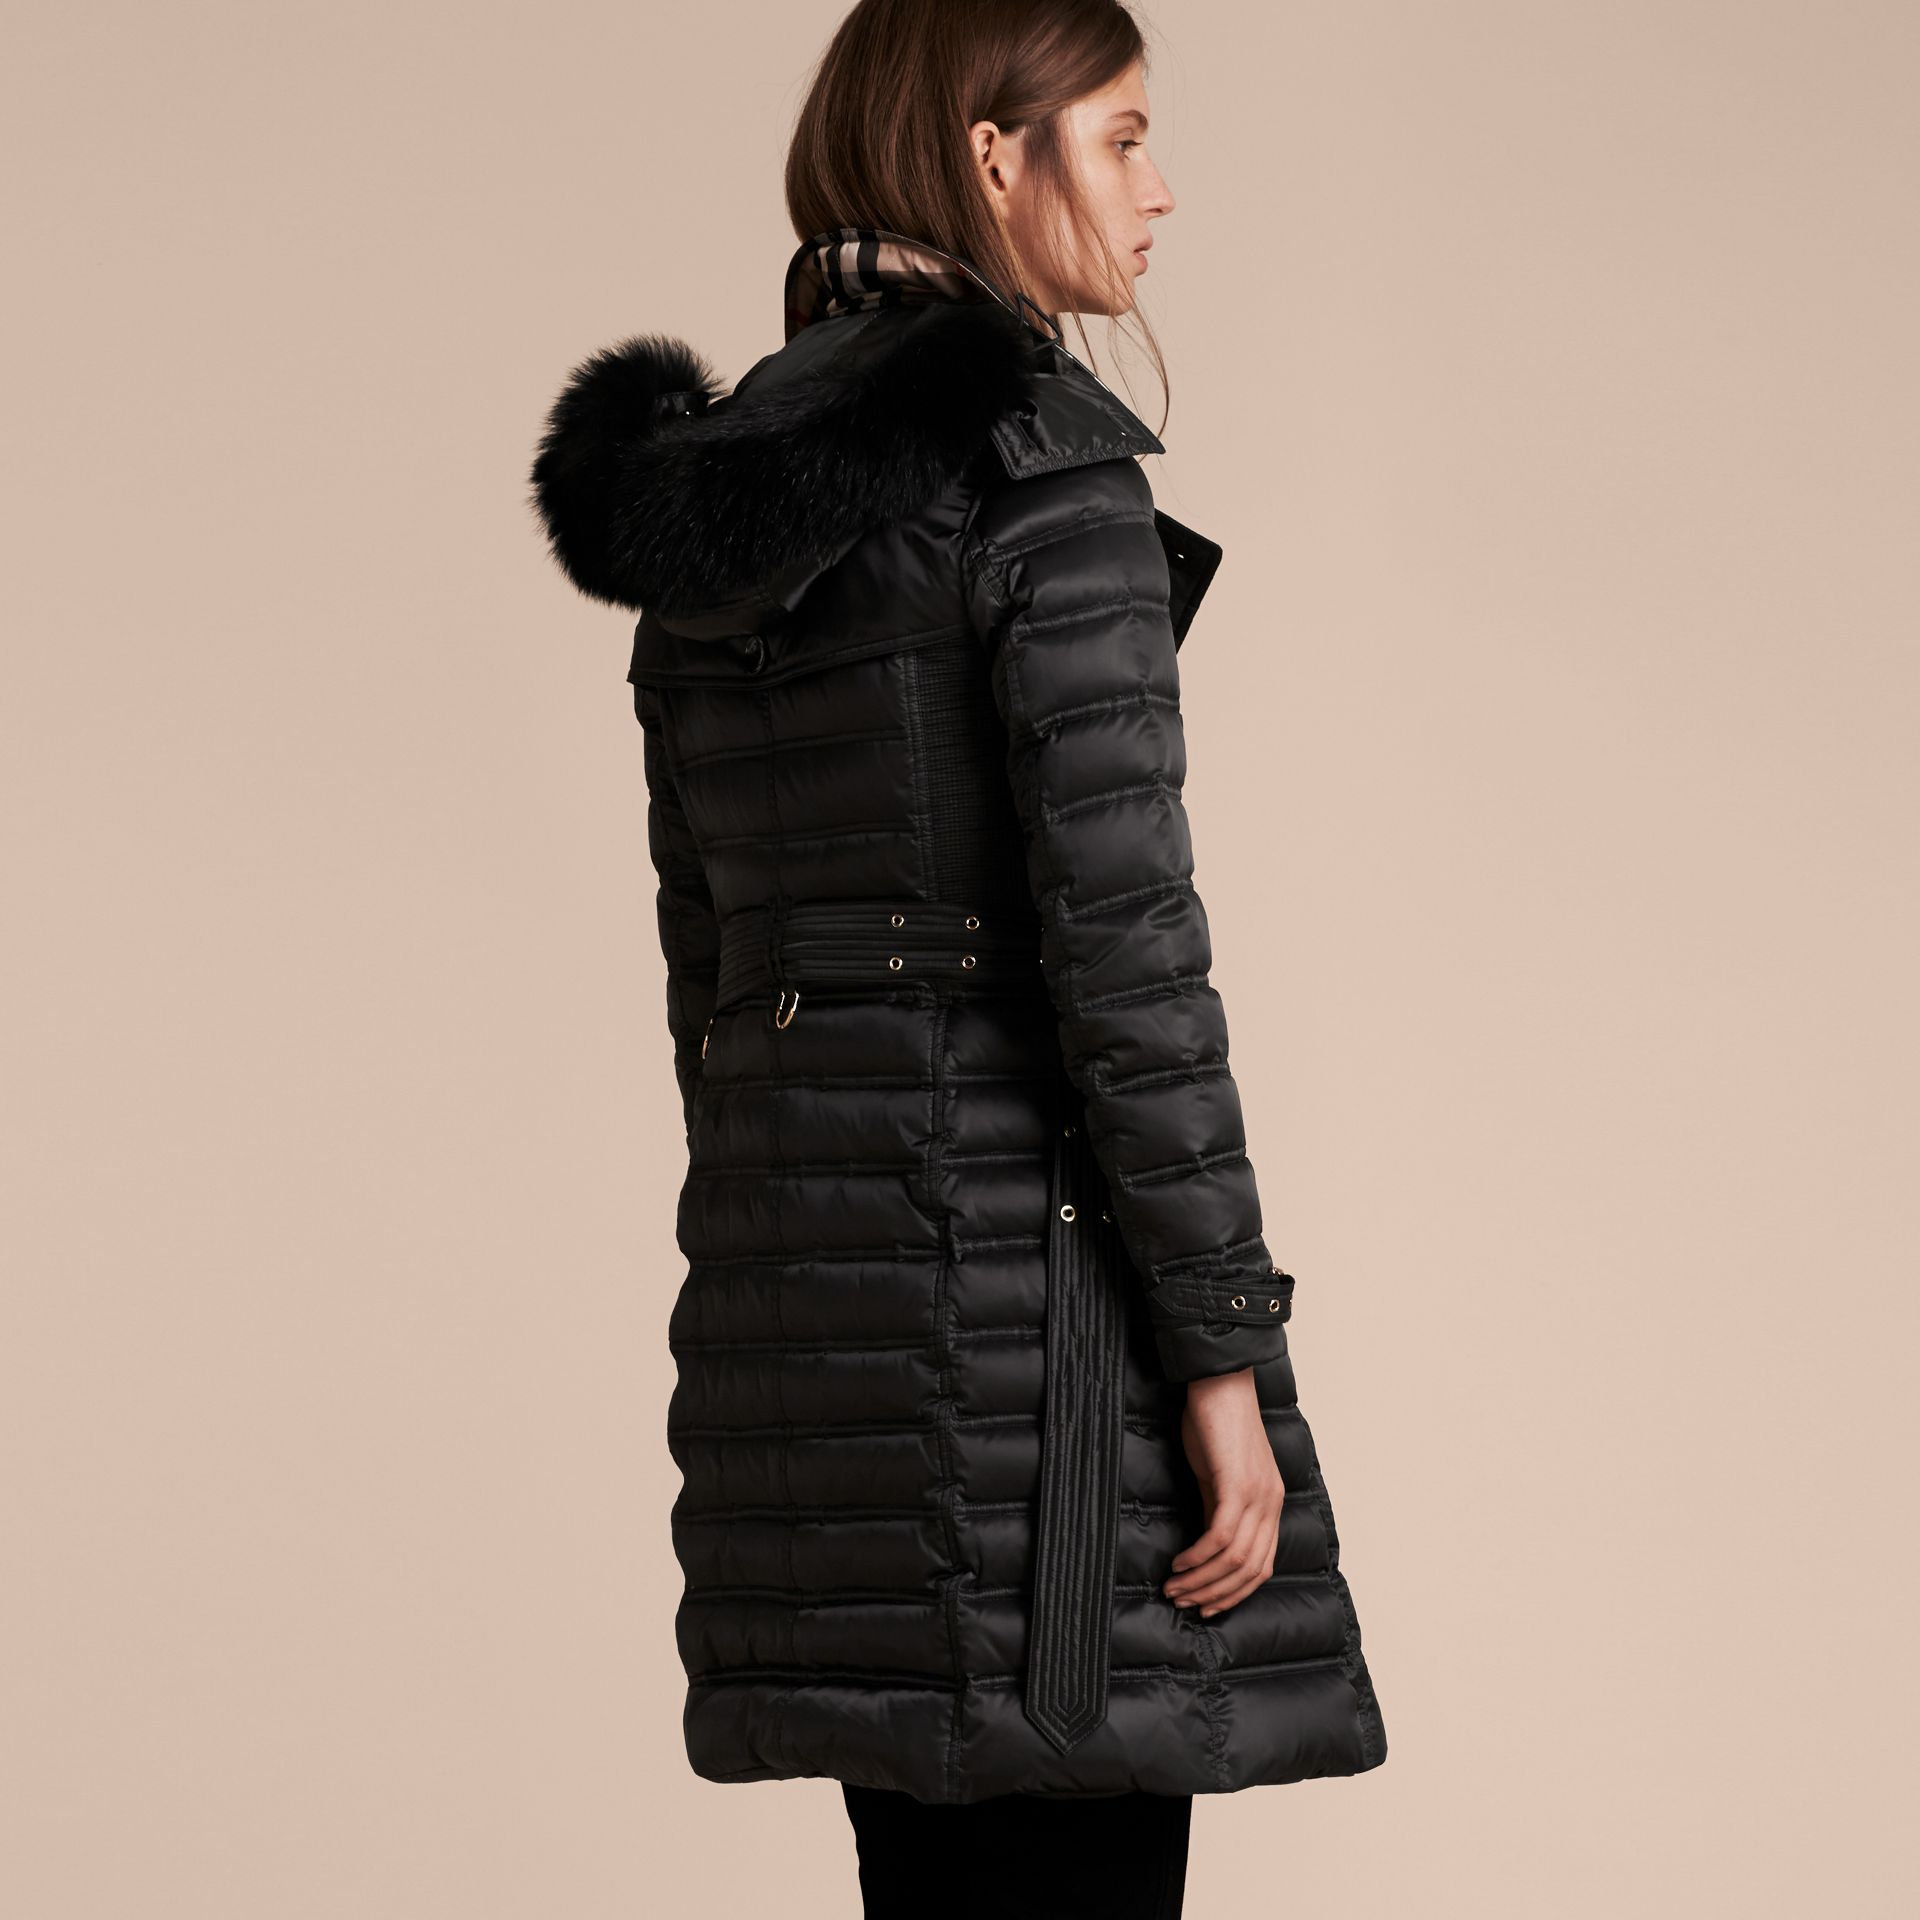 Black Down-Filled Puffer Coat with Fur Trim Black - gallery image 3